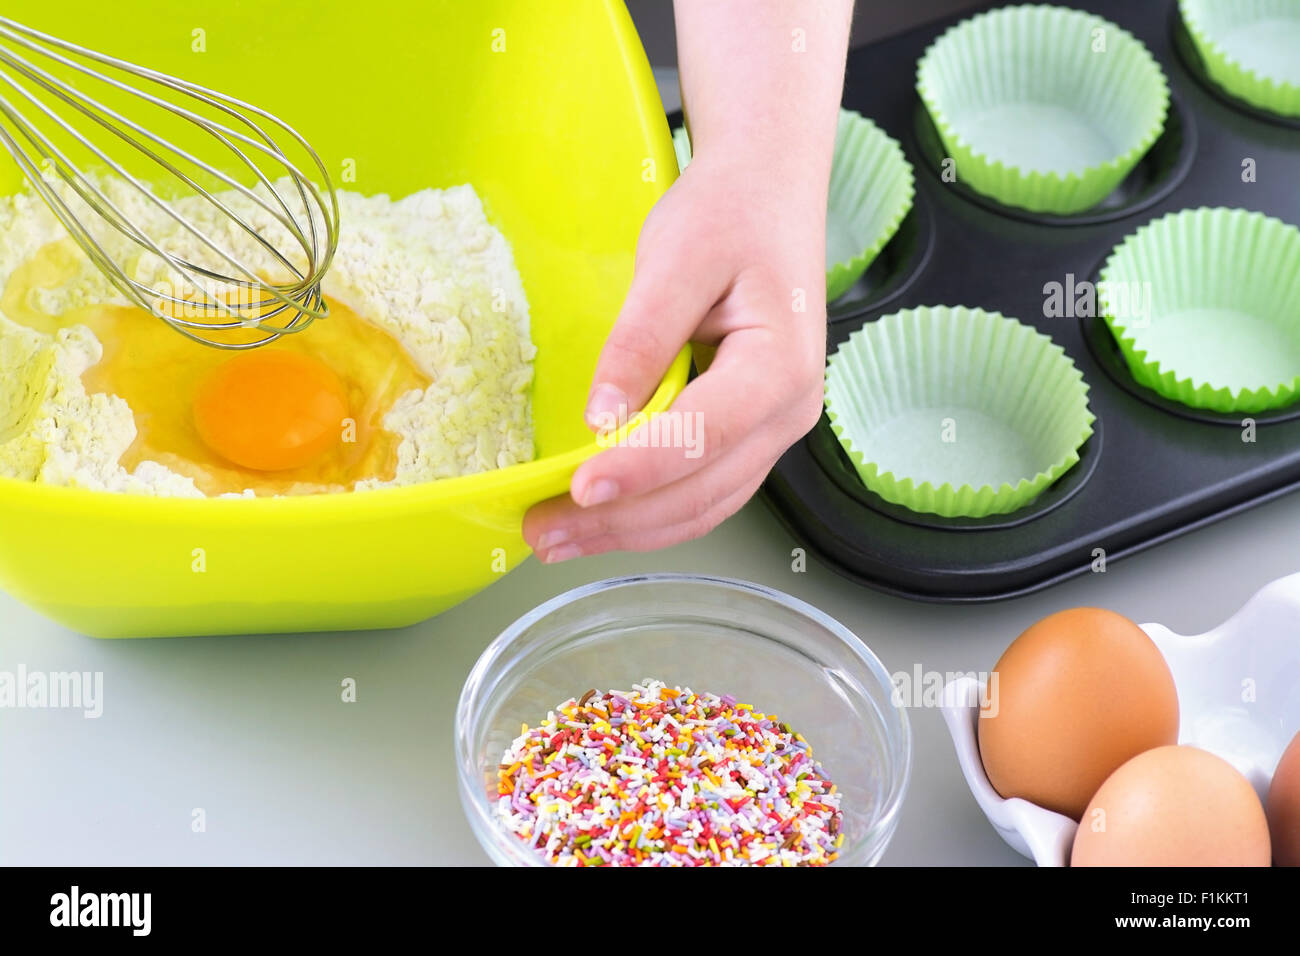 Boy or Girl Baking  cooking cakes just about to whisk the egg into the flour - Stock Image